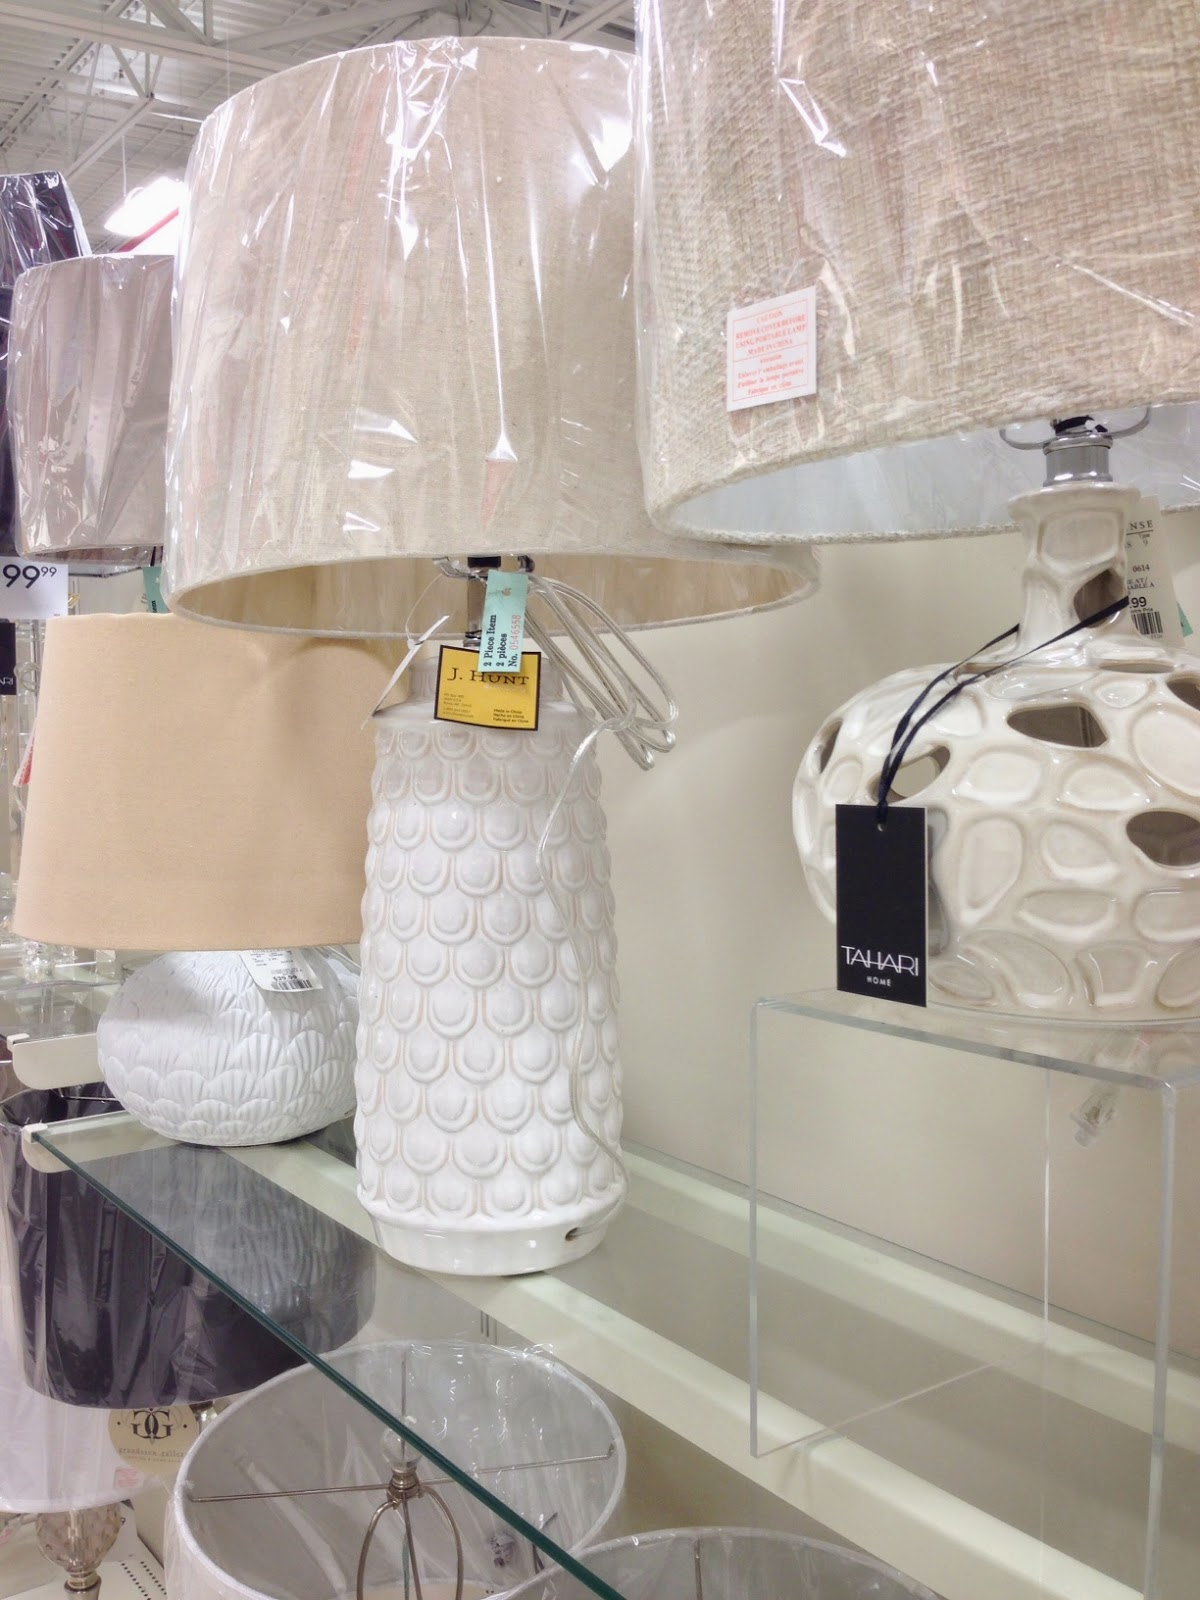 Elliven studio giveaway is now closed homesense stockyards if could hoard lamps i would regretting not buying the one in the middle or the one on the far left le sigh aloadofball Choice Image